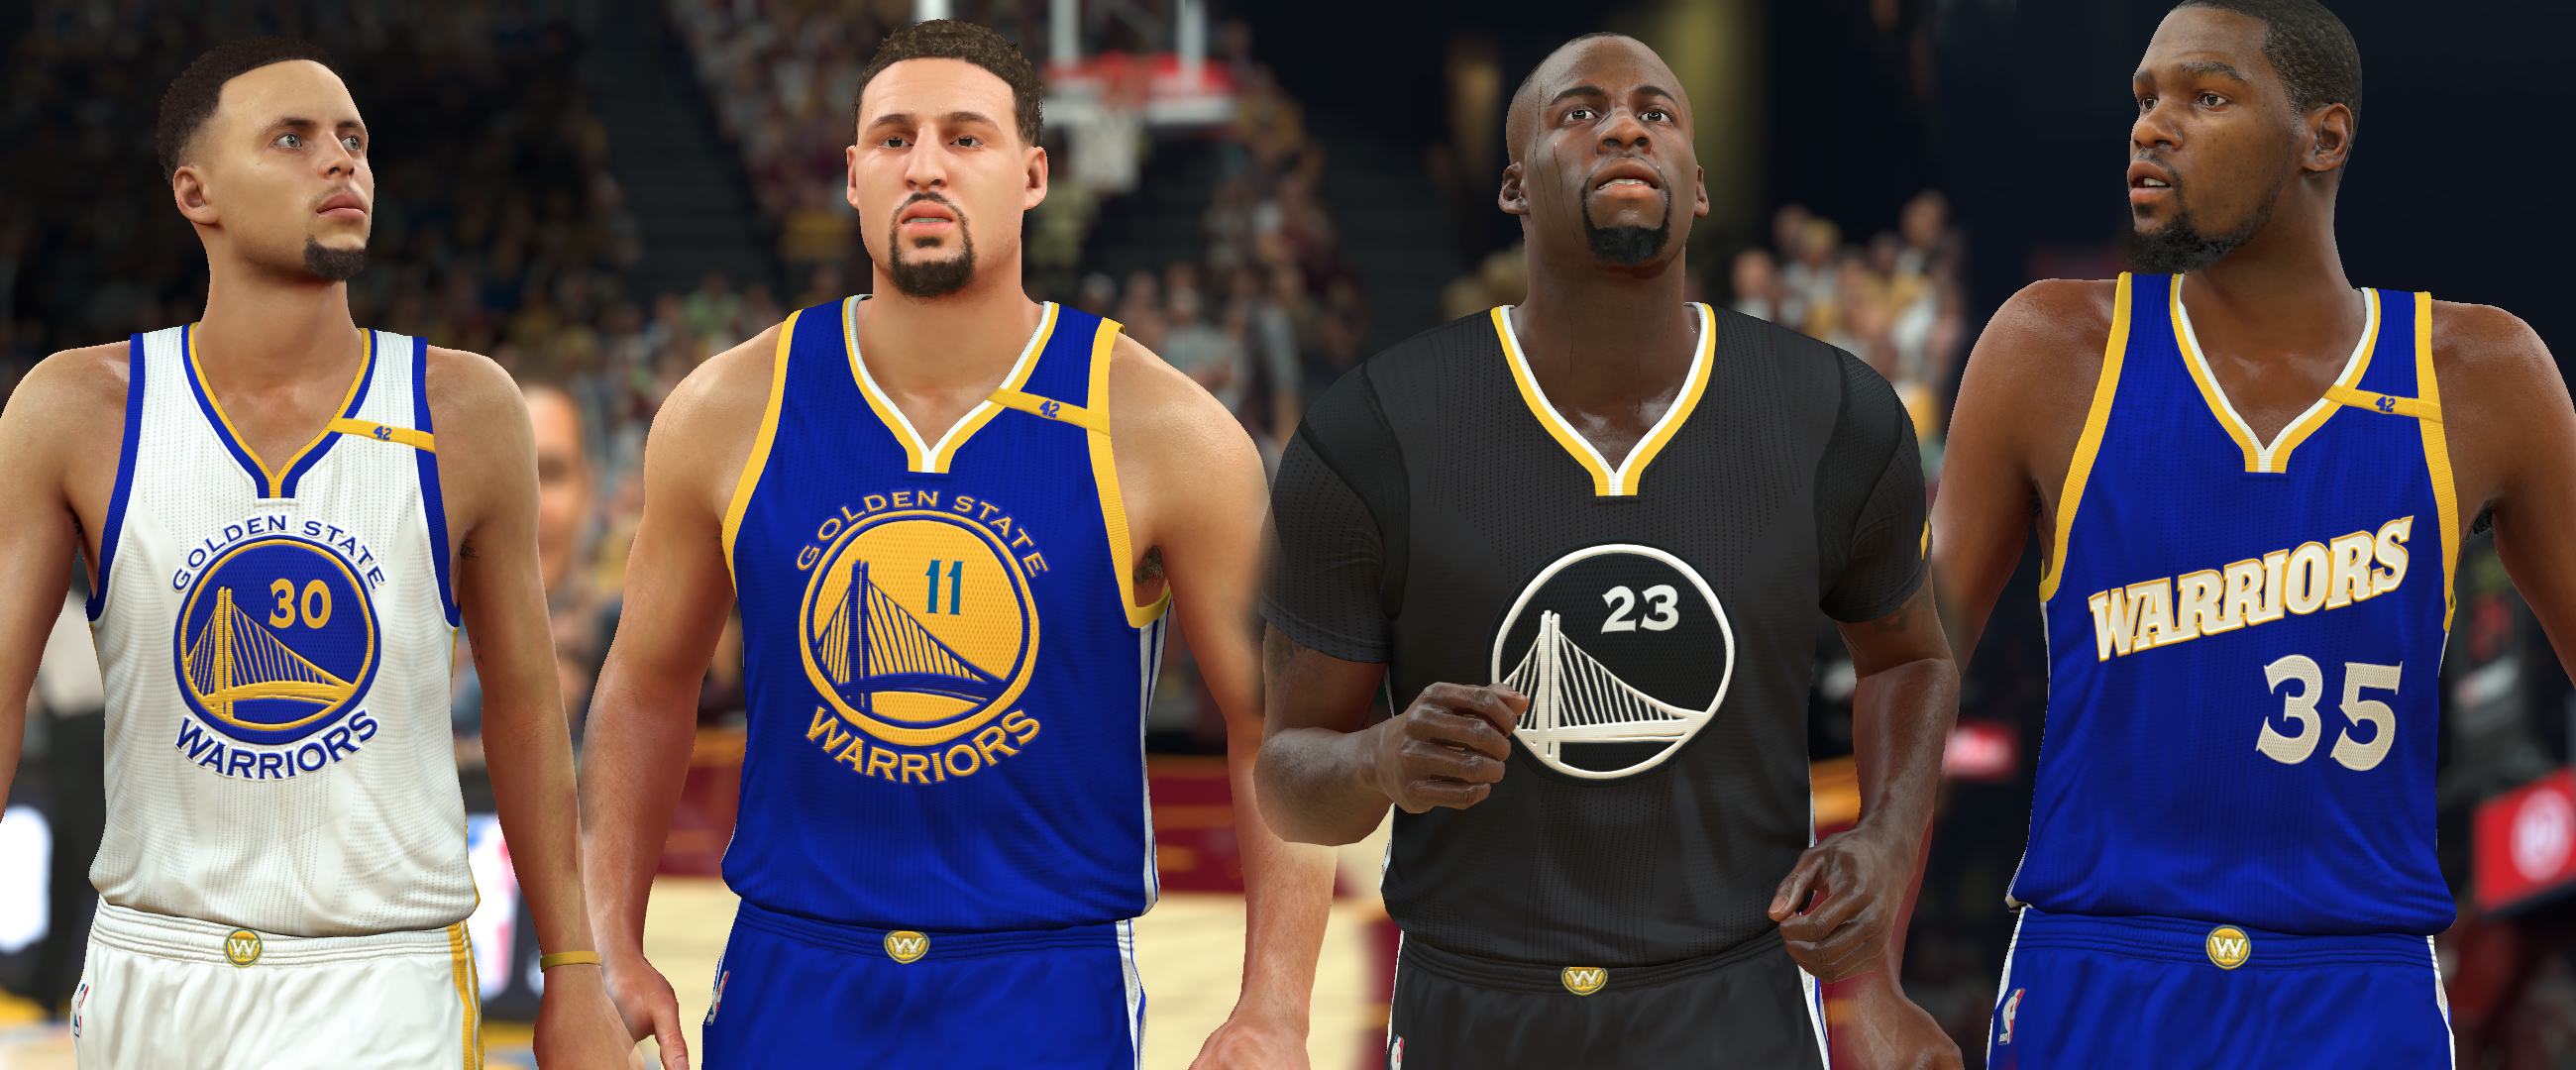 Golden State Warriors Jerseys